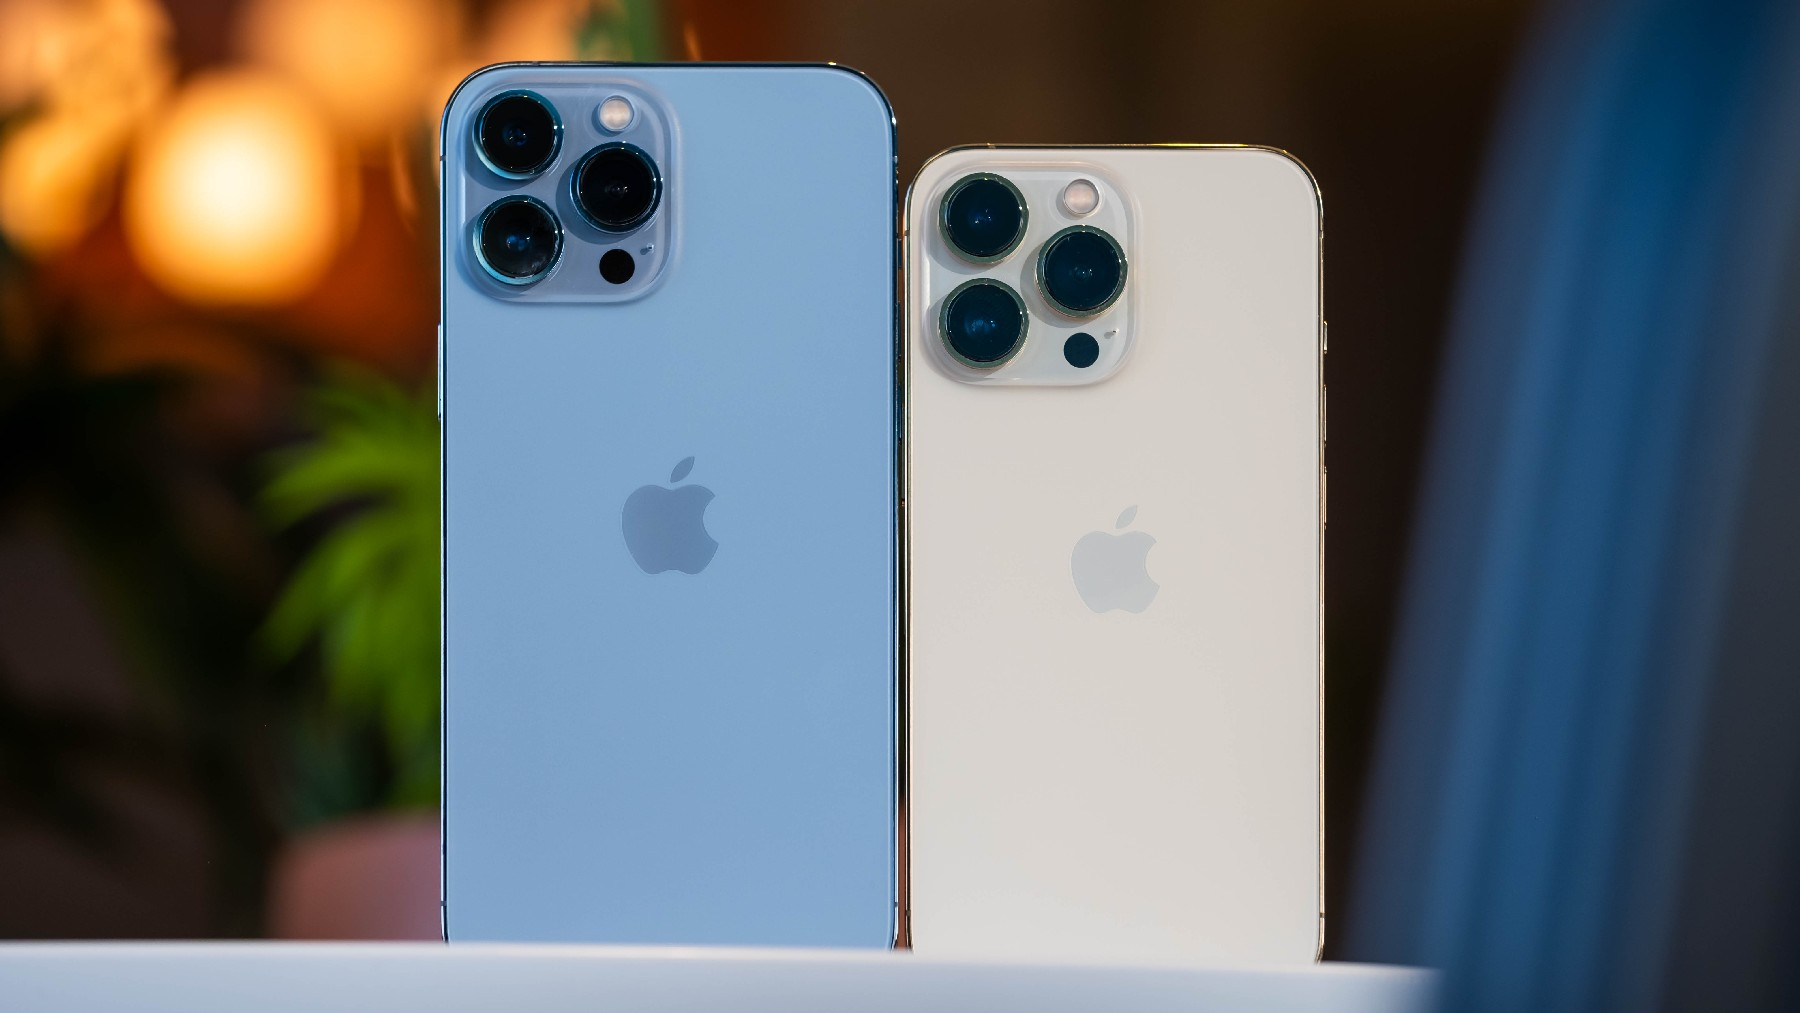 iPhone 13 Pro and Pro Max review: Apple saved the real upgrade for the Pros | Engadget